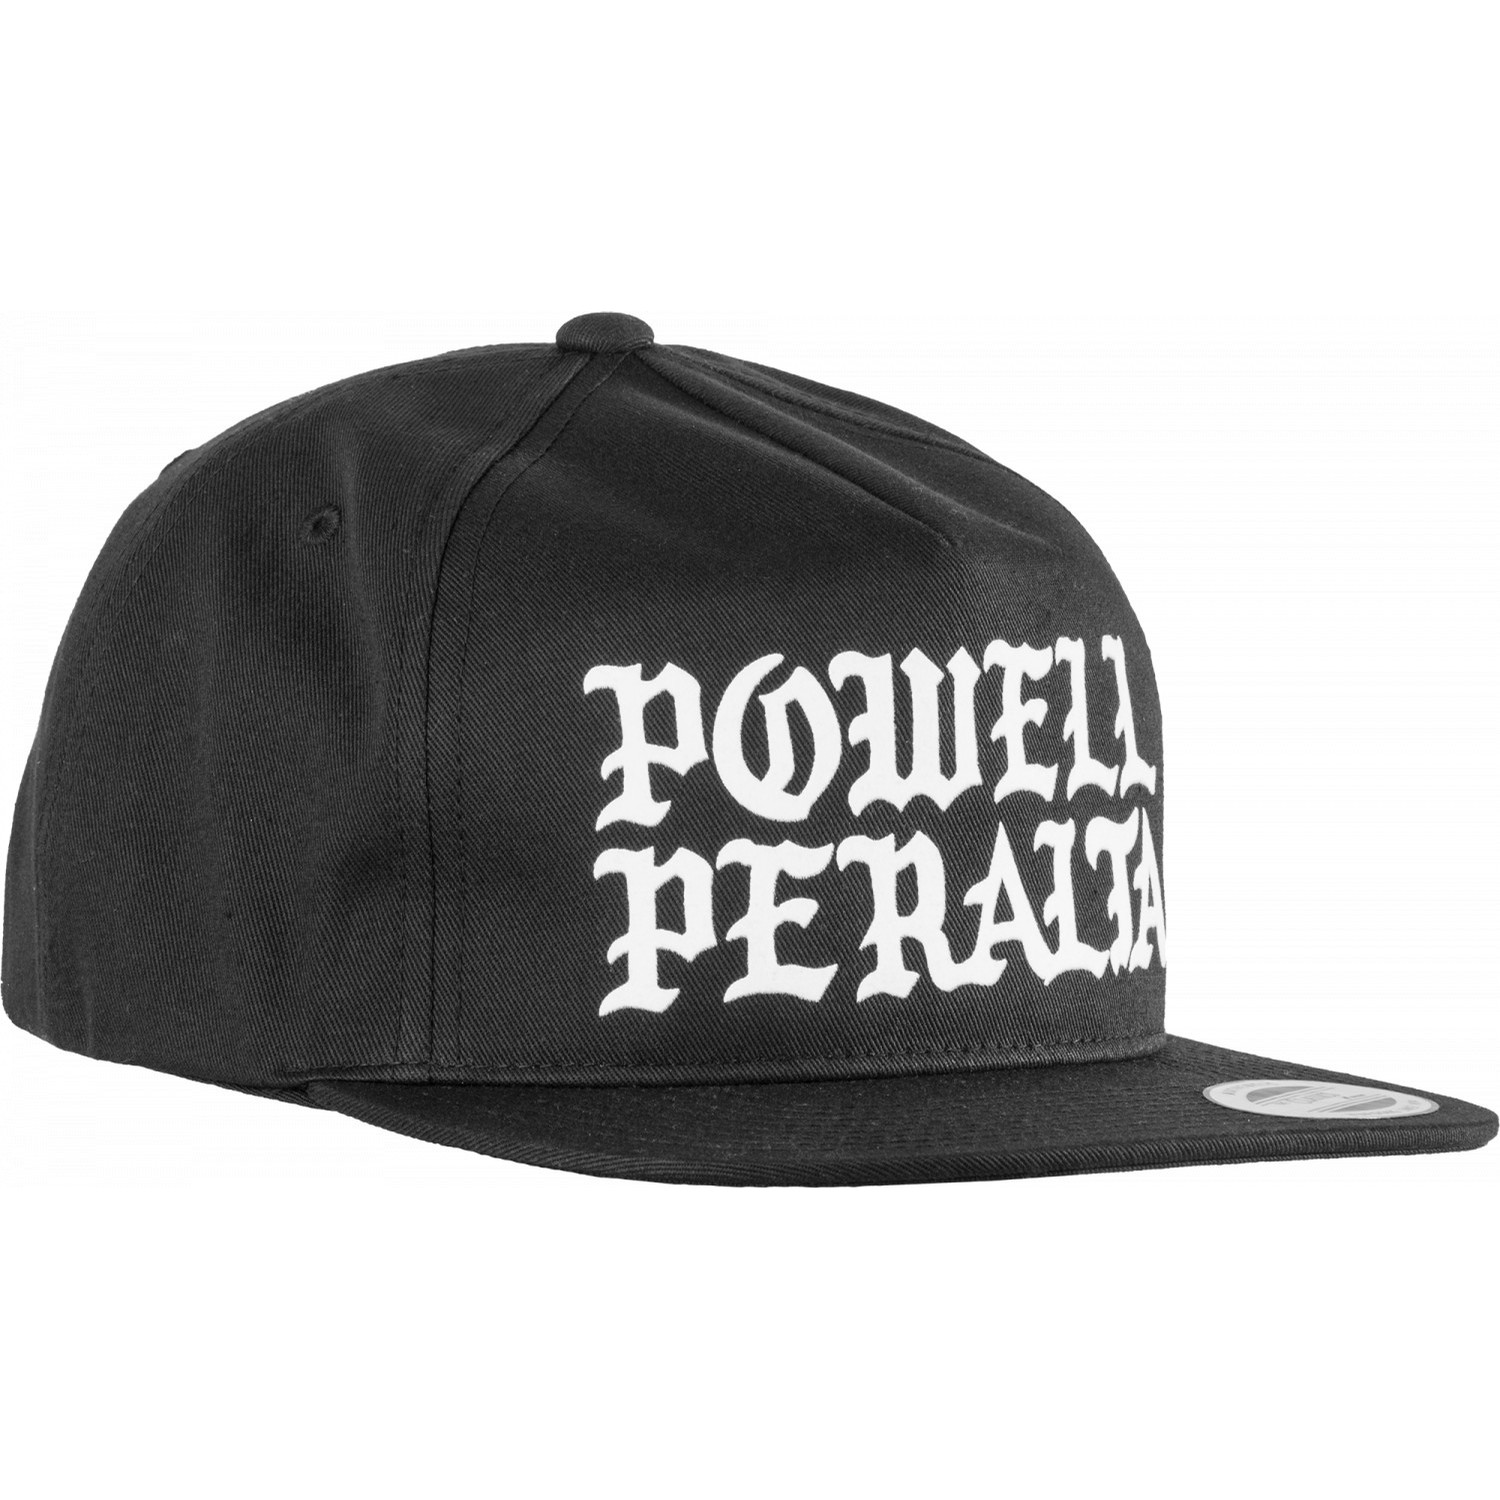 1d1cfb418aa5d Powell Peralta Black White Burst Snapback Hat APPAREL Accesories ...